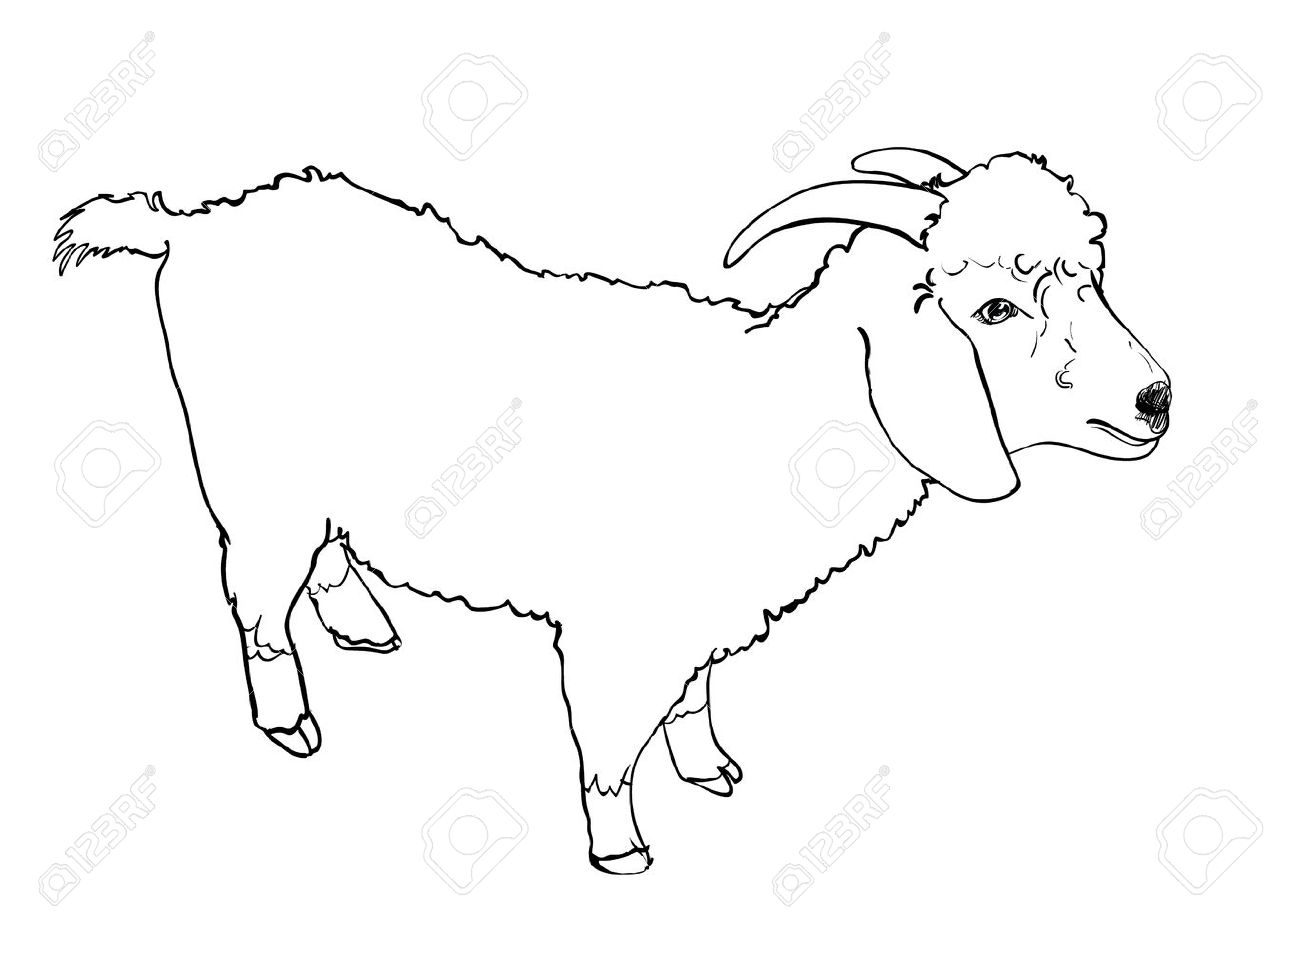 Sketch vector of angora goat on white background